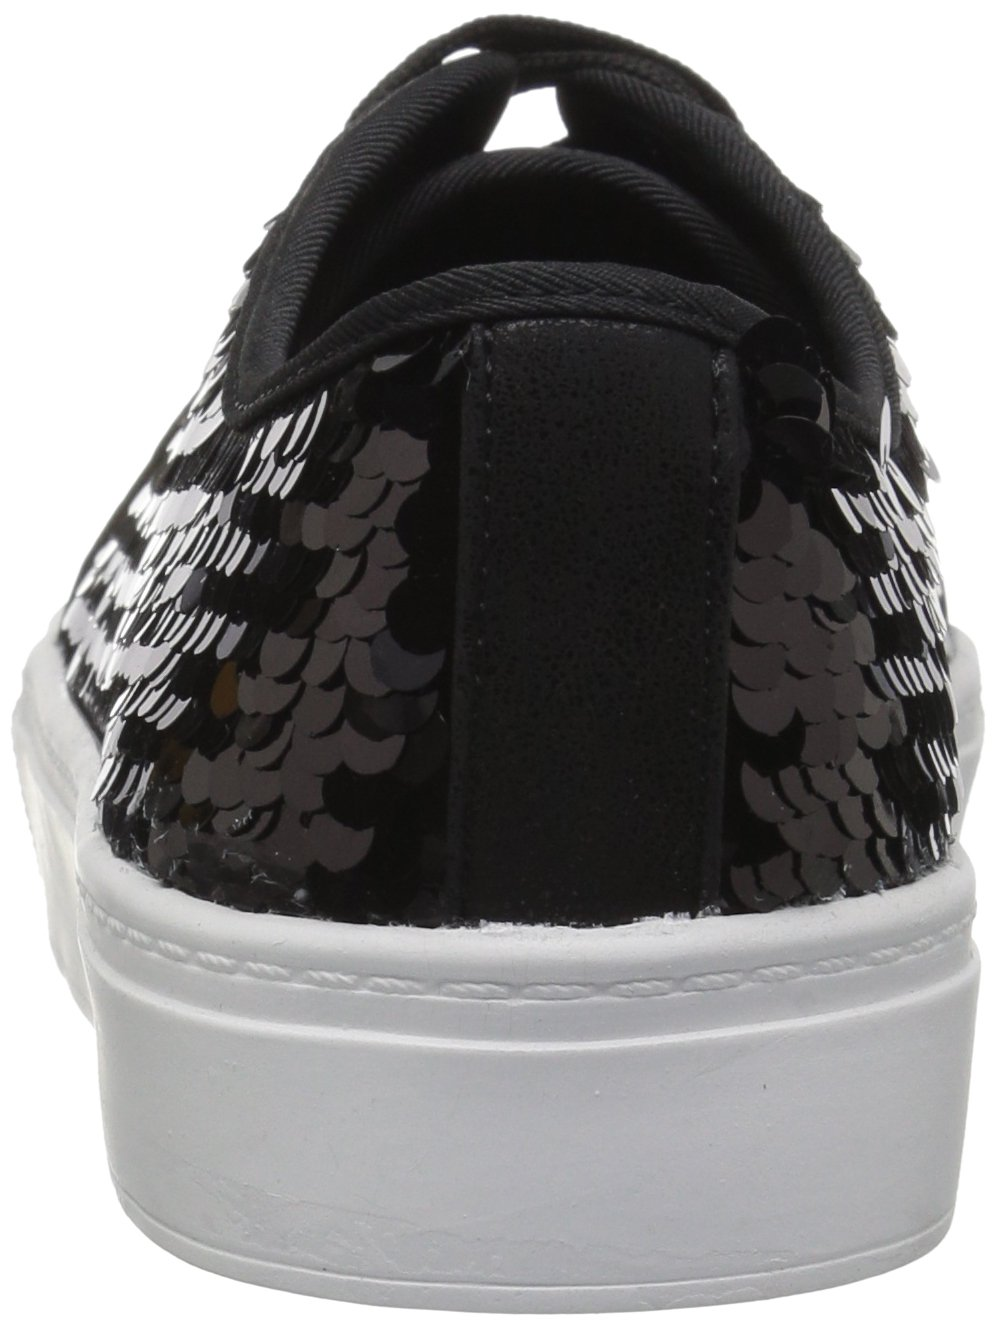 Dirty B0731Y7ZF6 Laundry by Chinese Laundry Women's Josi Fashion Sneaker B0731Y7ZF6 Dirty 7.5 B(M) US|Black Sequins 0633ed